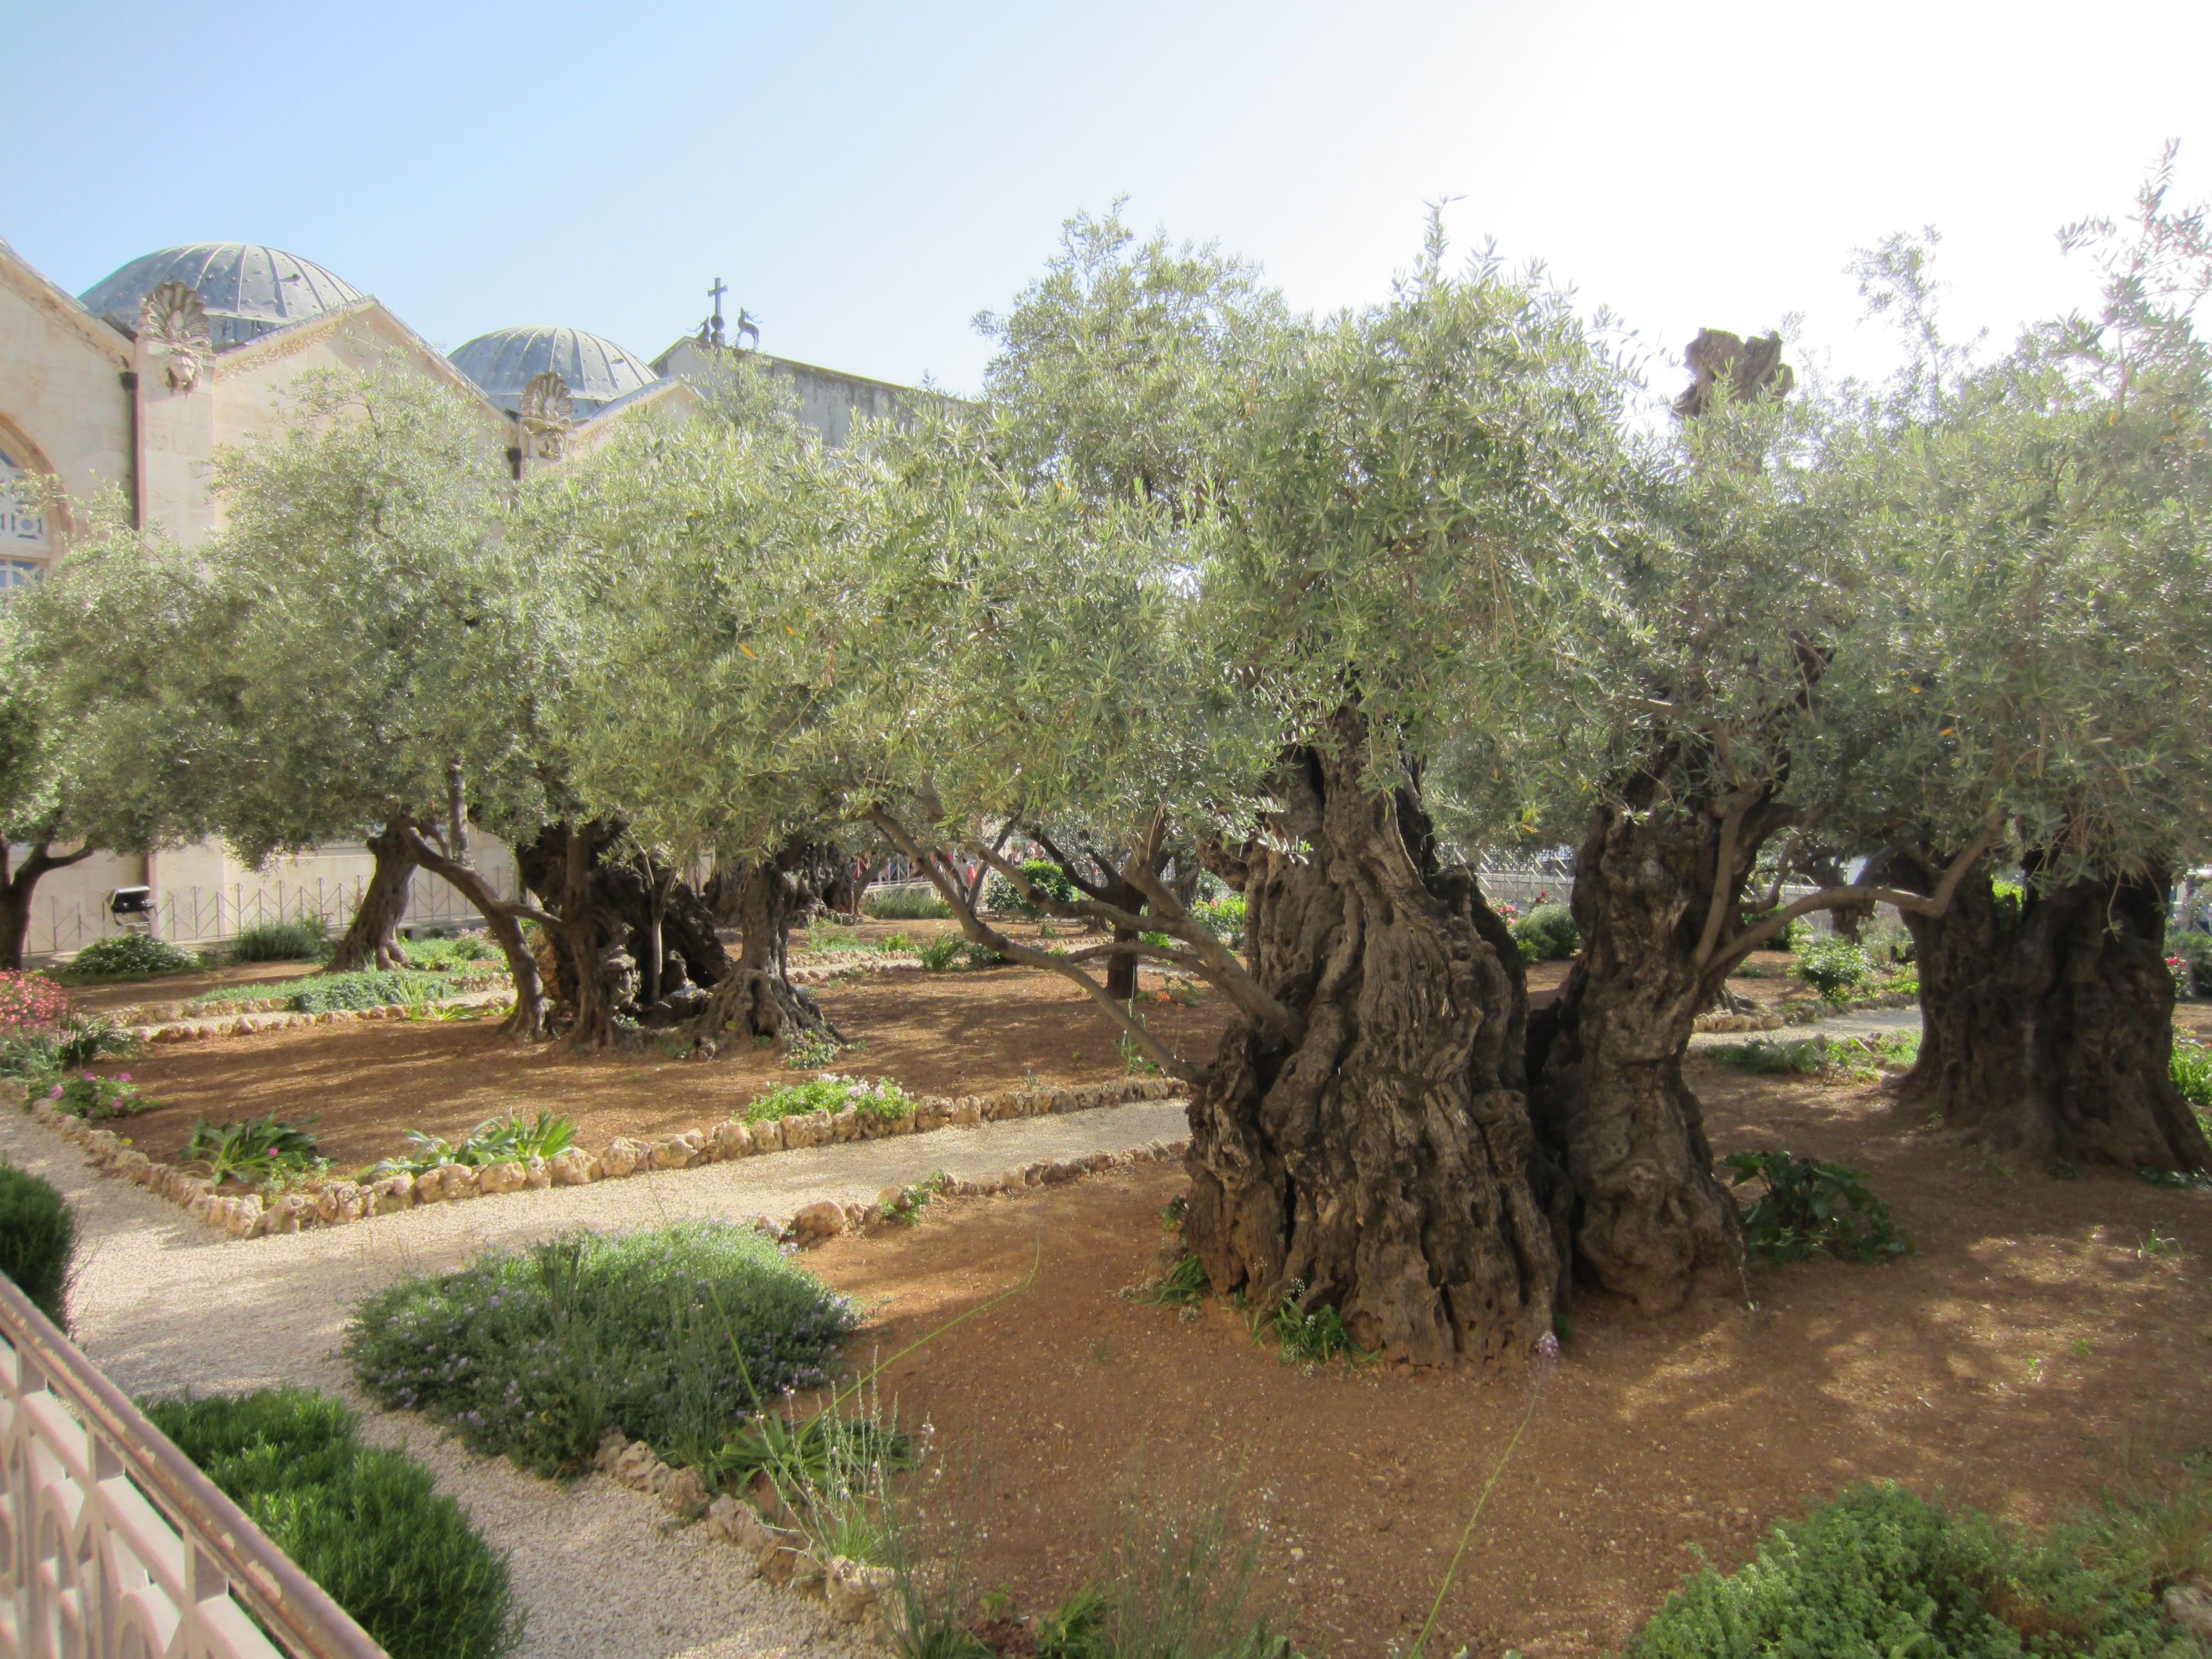 The olive trees in the Garden of Gethsemane, where Jesus was ...